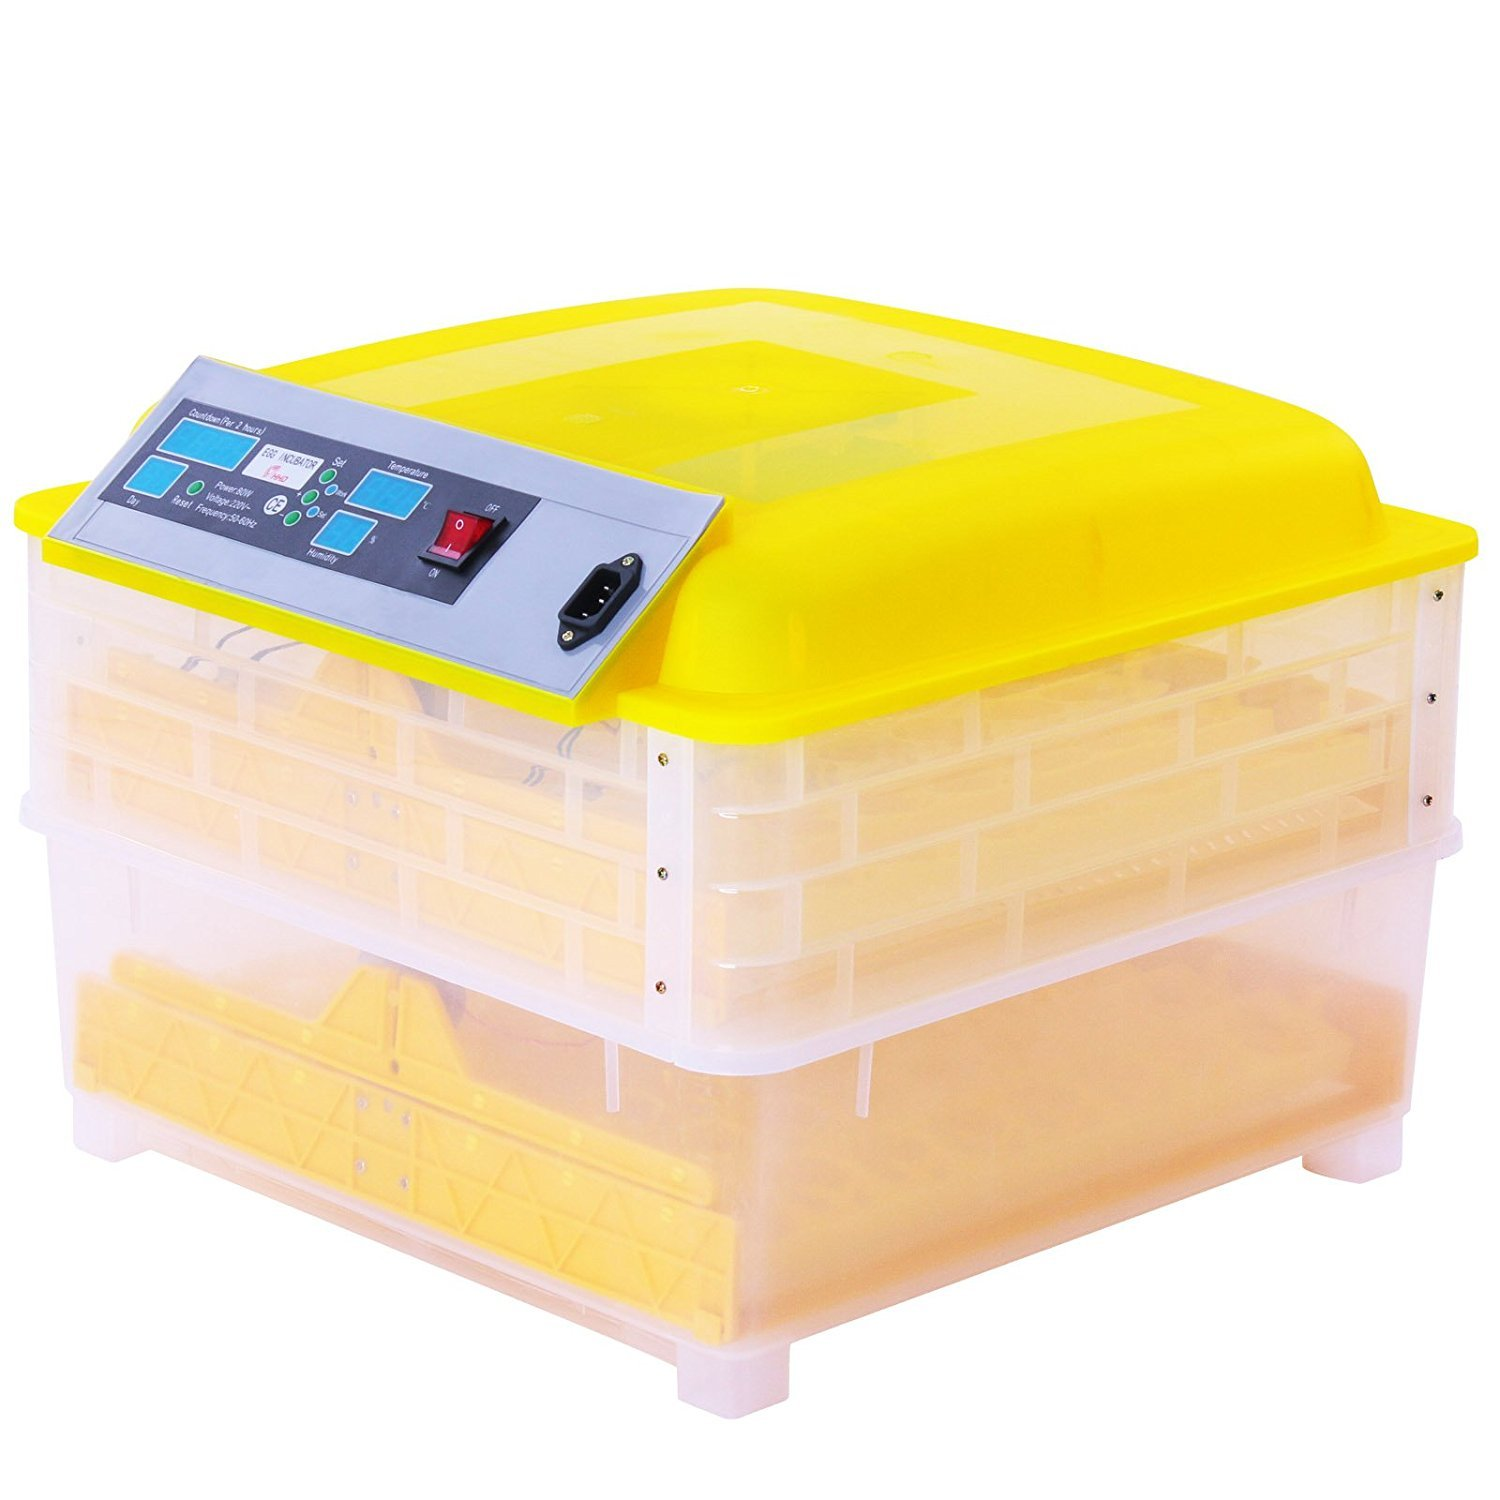 MosaicAL Egg Incubator and Hatcher 96 Eggs Incubators for Hatching Eggs 160W Digital Automatic Turning Poultry Chicken Duck Dove Quail (Yellow)